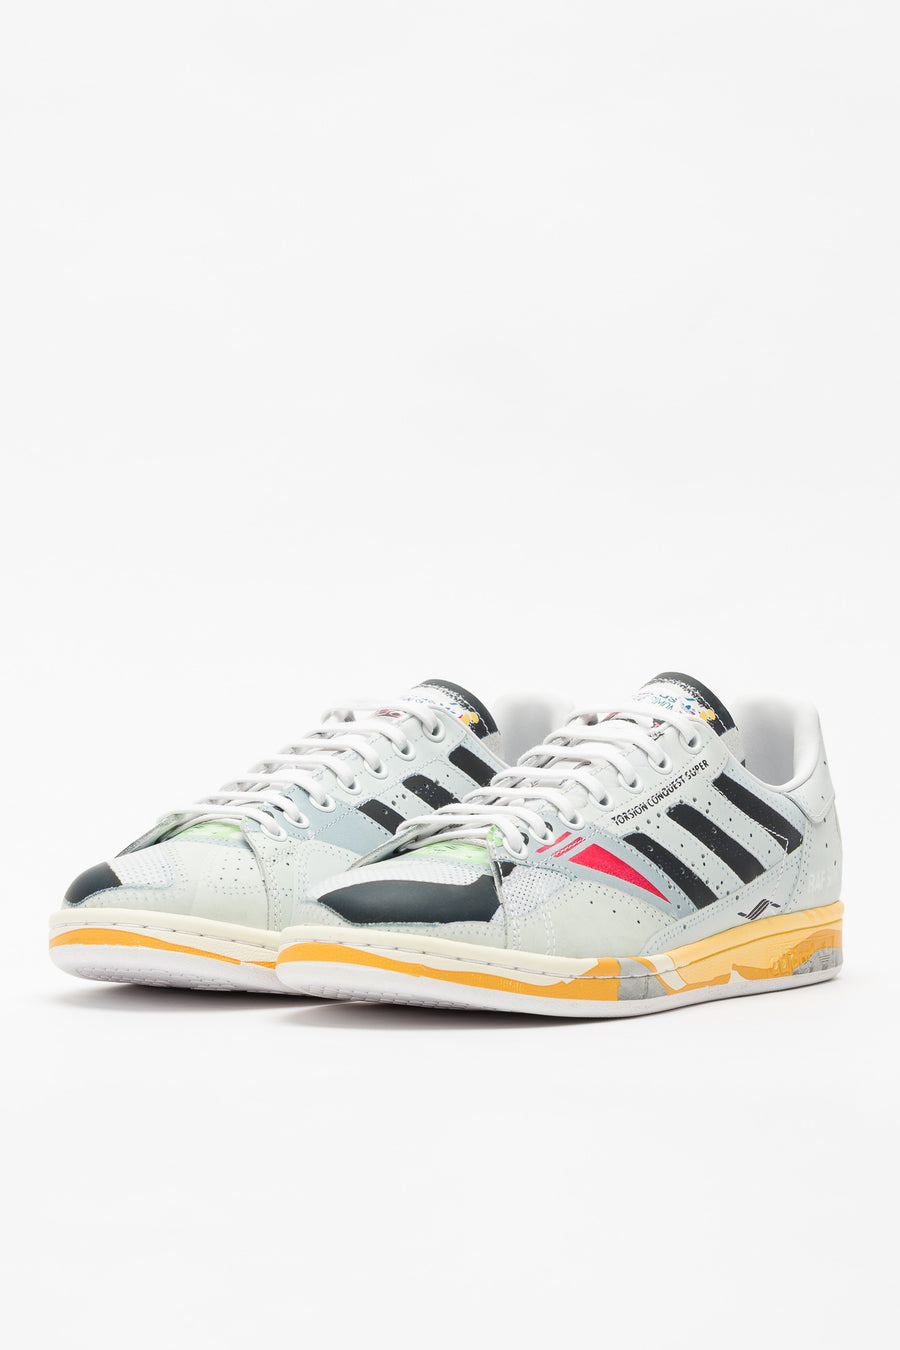 adidas RS Torsion Stan in White/Black/Grey - Notre